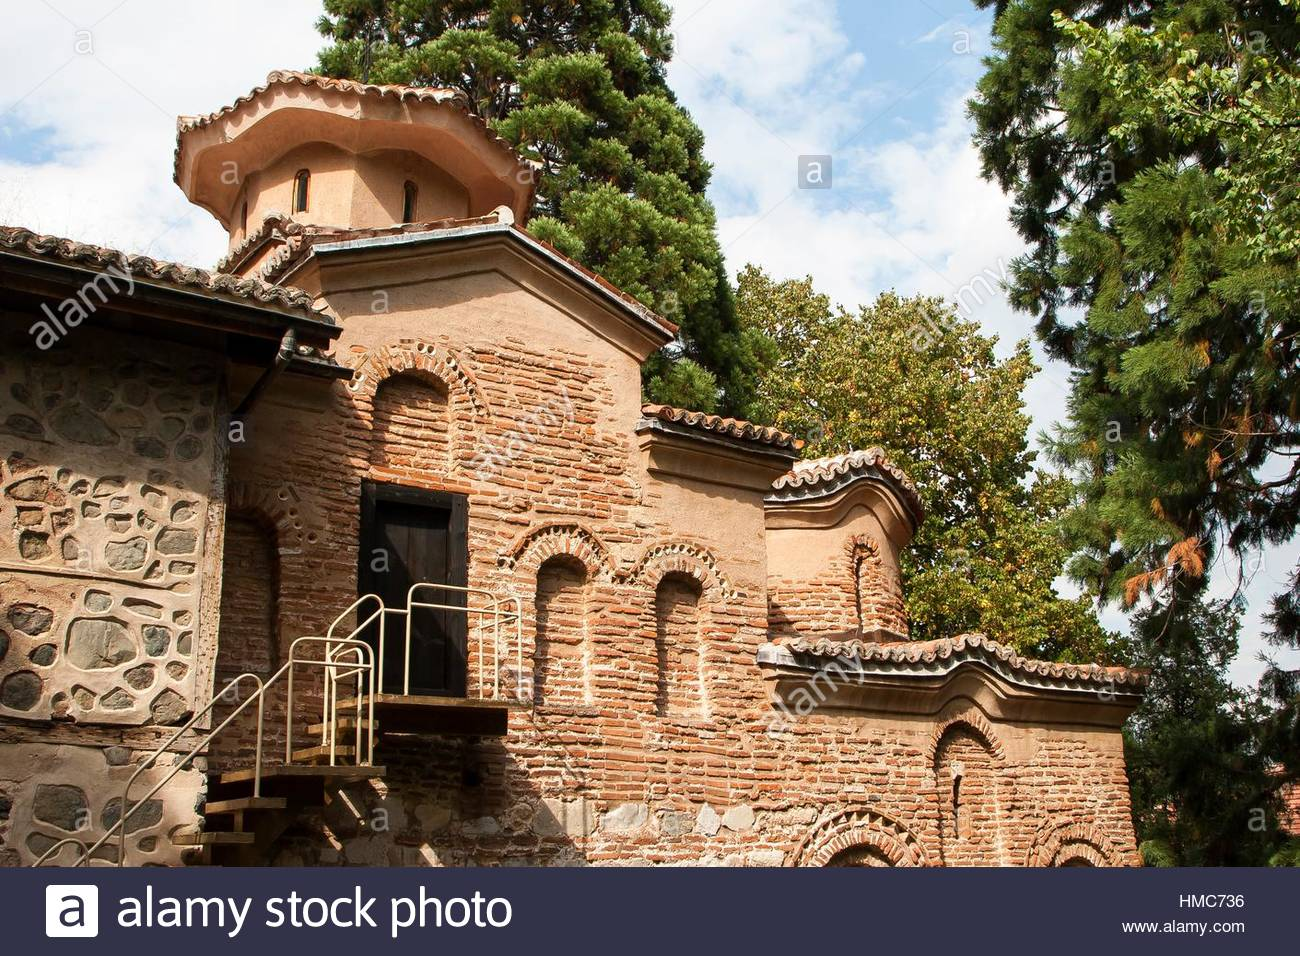 Boyana Church Sofia, Boyana Church, Sofia, Bulgaria Stock Photo, Royalty Free Image ...